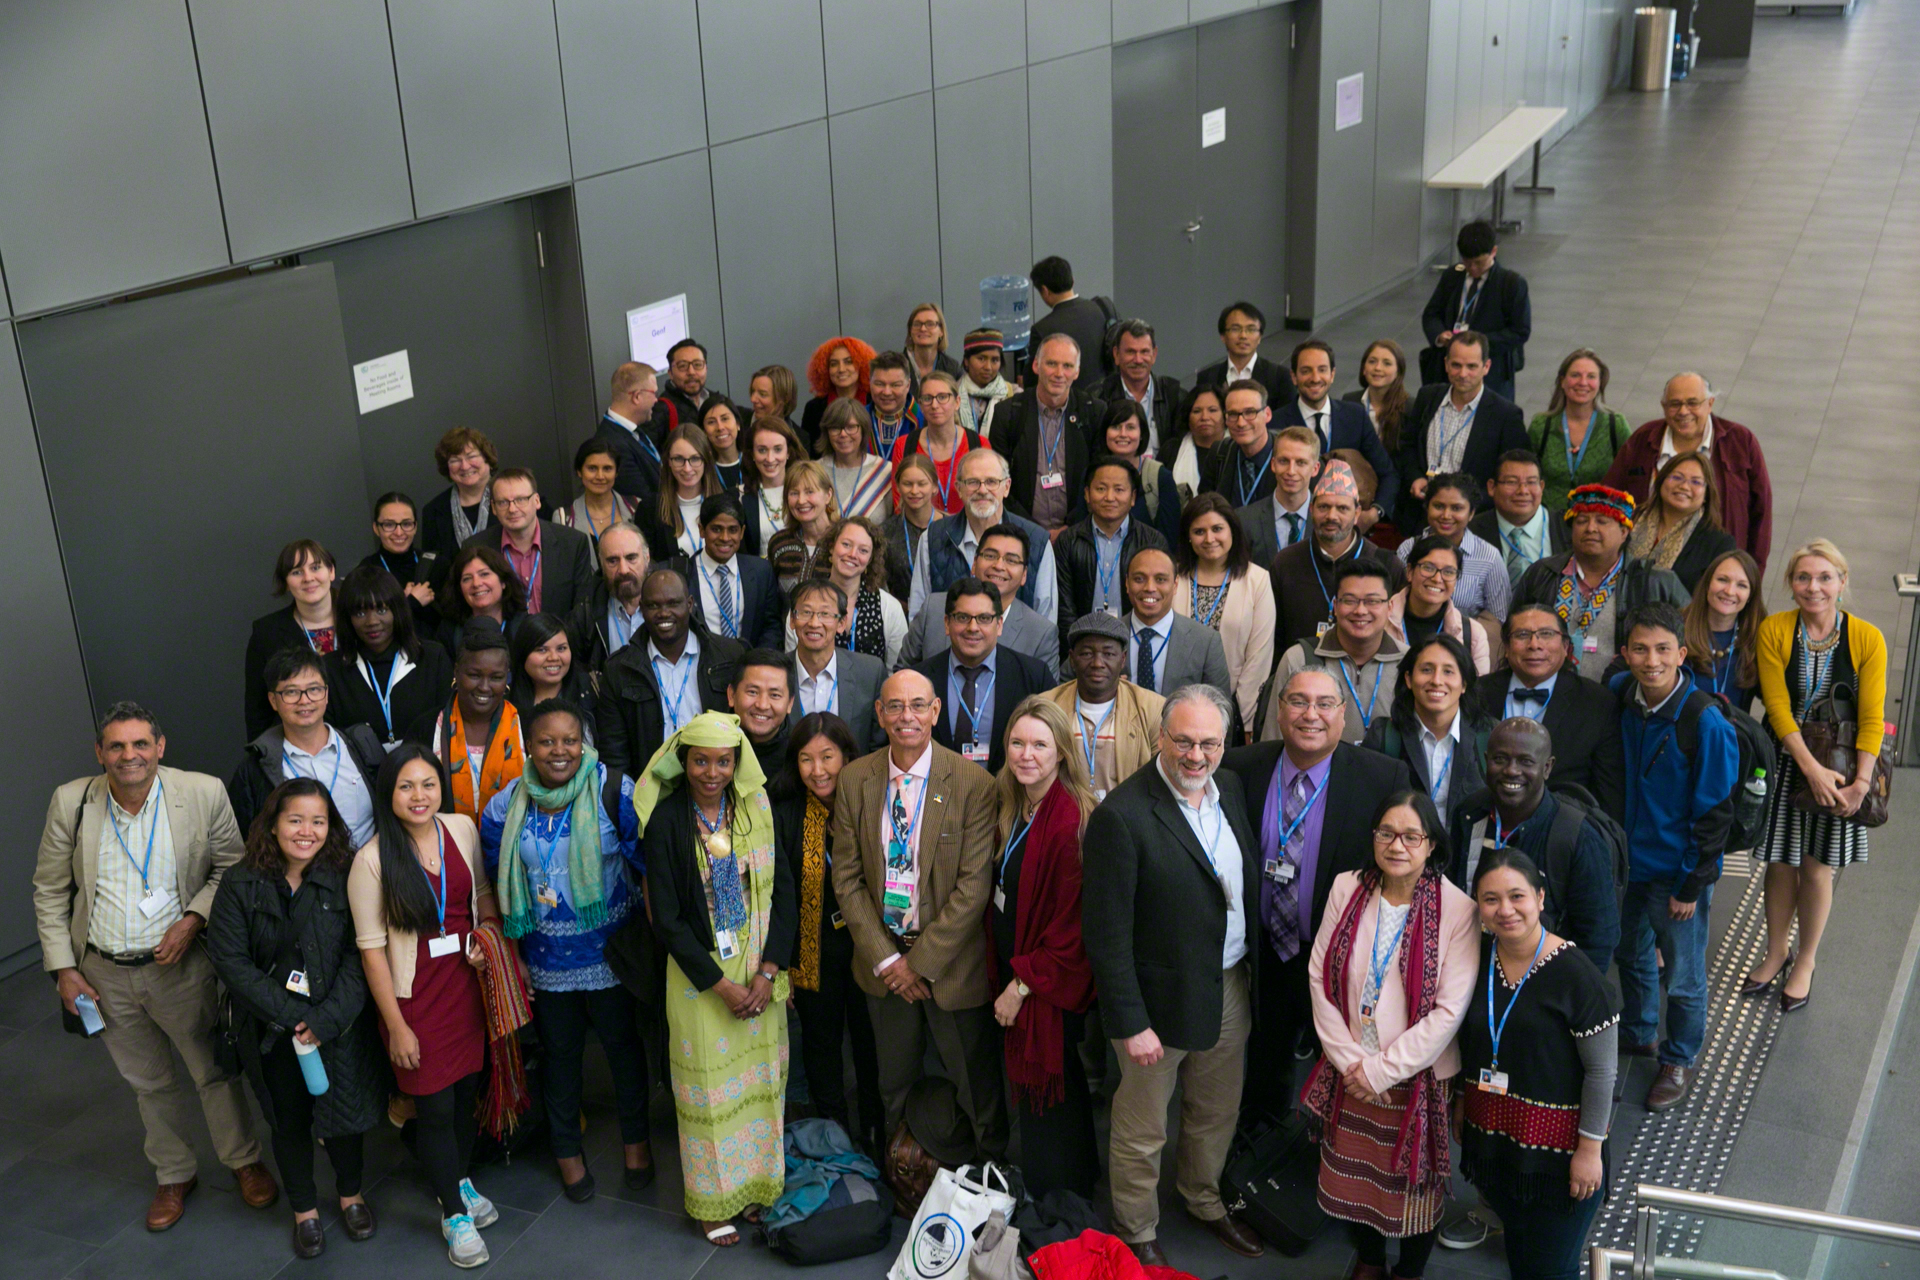 IPLC leaders and climate negotiators group photo following discussion on the LCIP Platform during the Climate negotiations held in Bonn, Germany (UNFCCC SB48). Photo by IISD/Kiara Worth